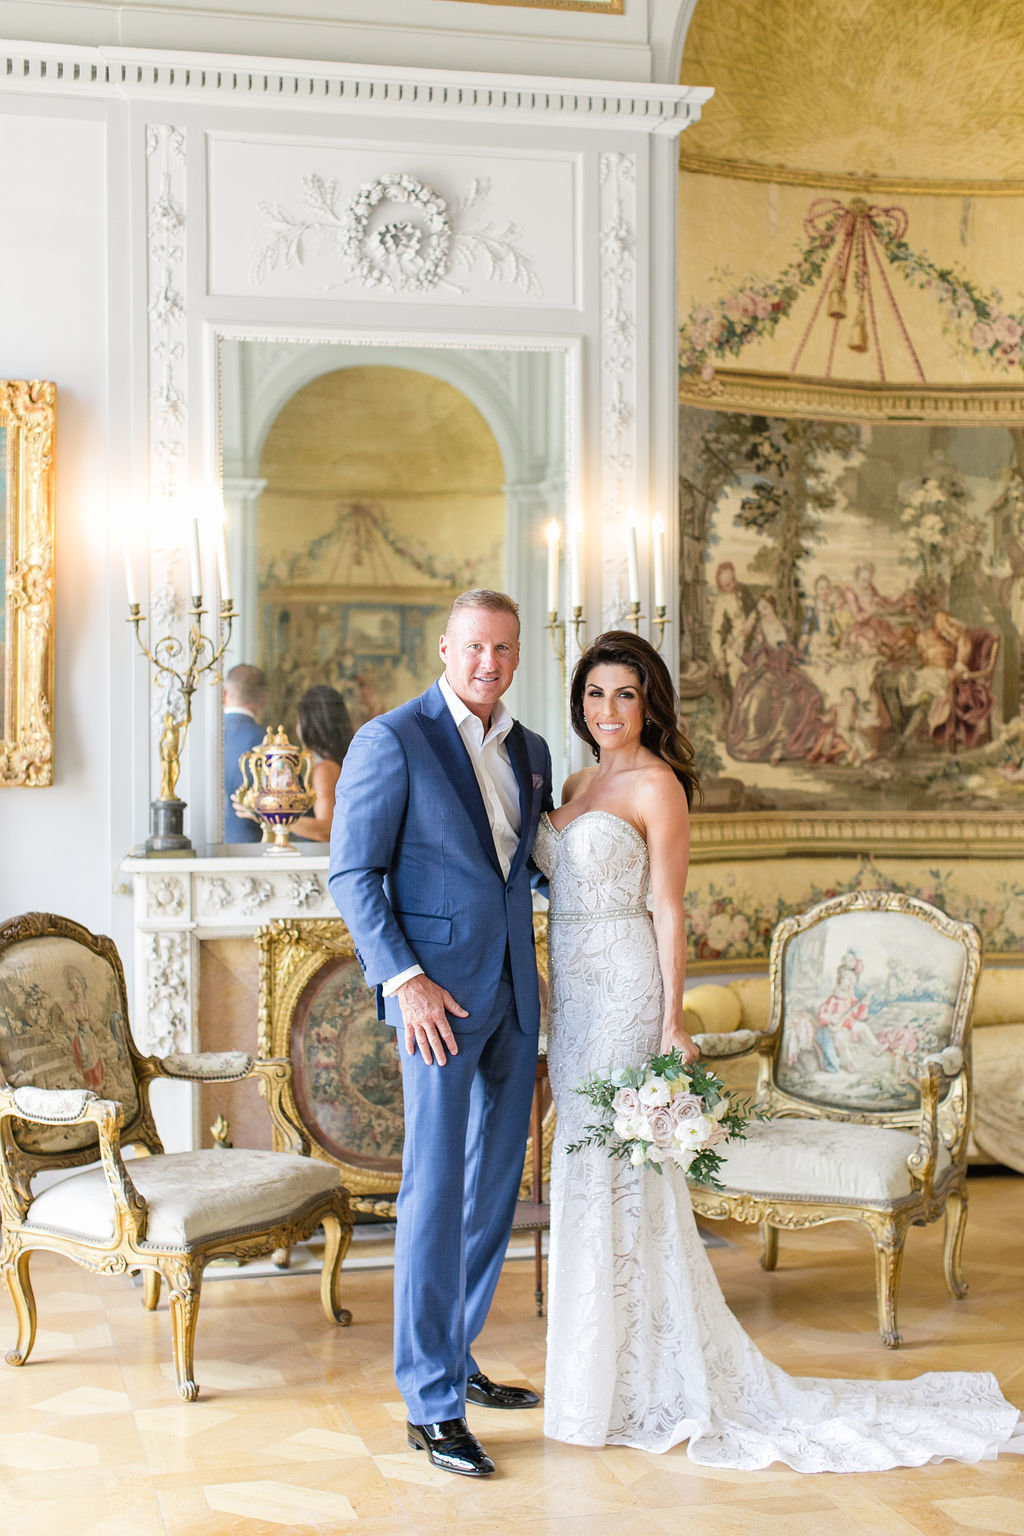 south-france-wedding-photographer-roberta-facchini-photography-111